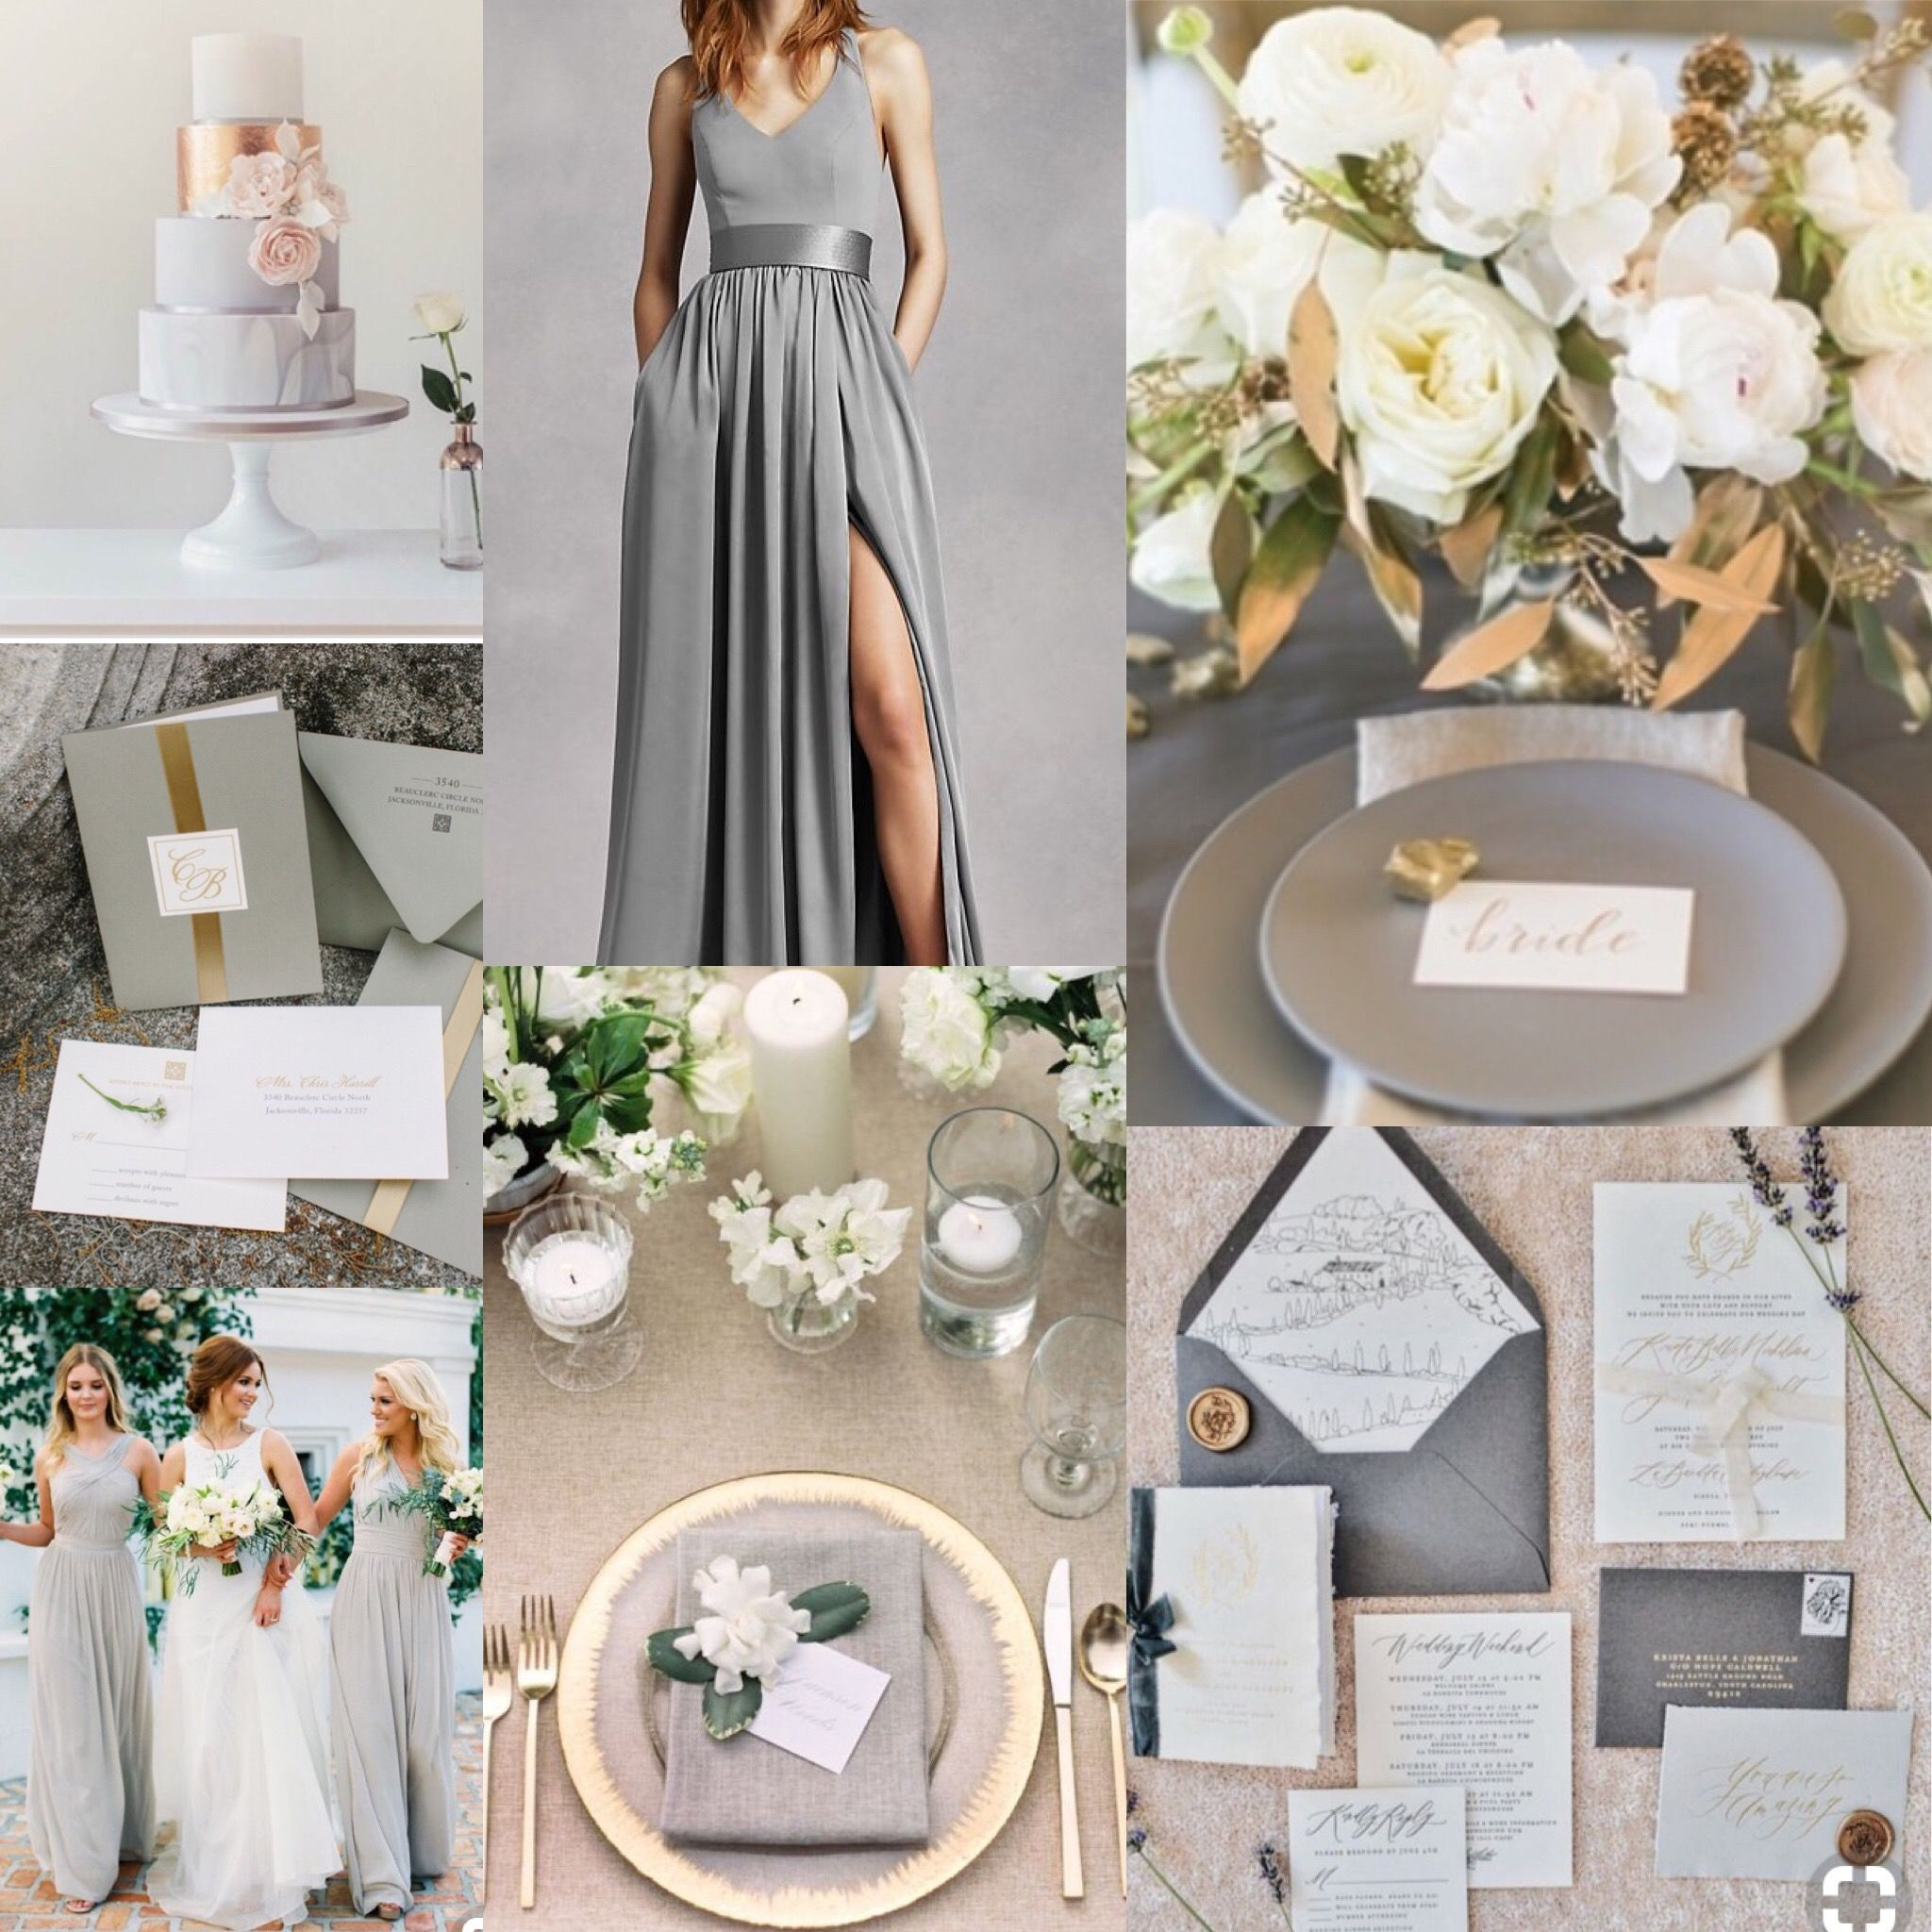 Gray White And Green Bedroom: Wedding Inspiration, Wedding Color Palette, Gray And Gold